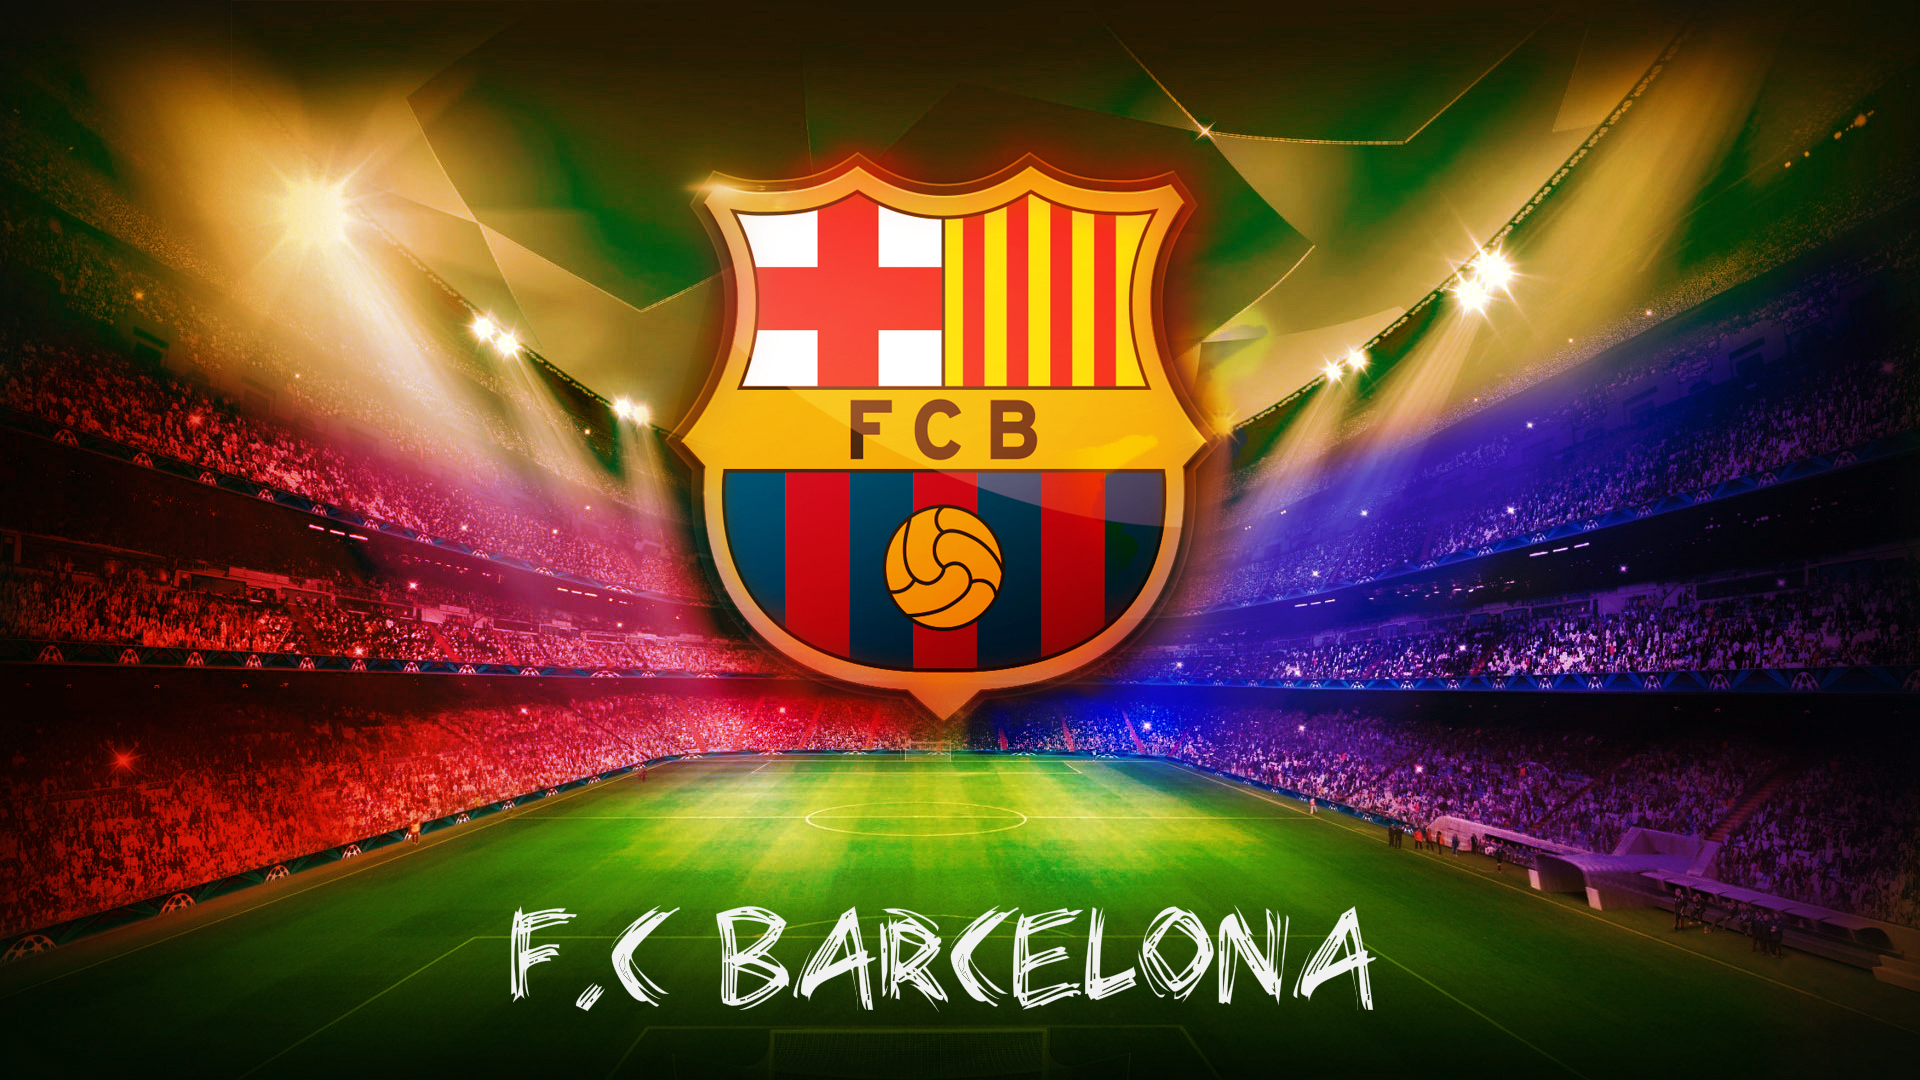 FC Barcelona Game on a Main Stadium 98.65 Kb